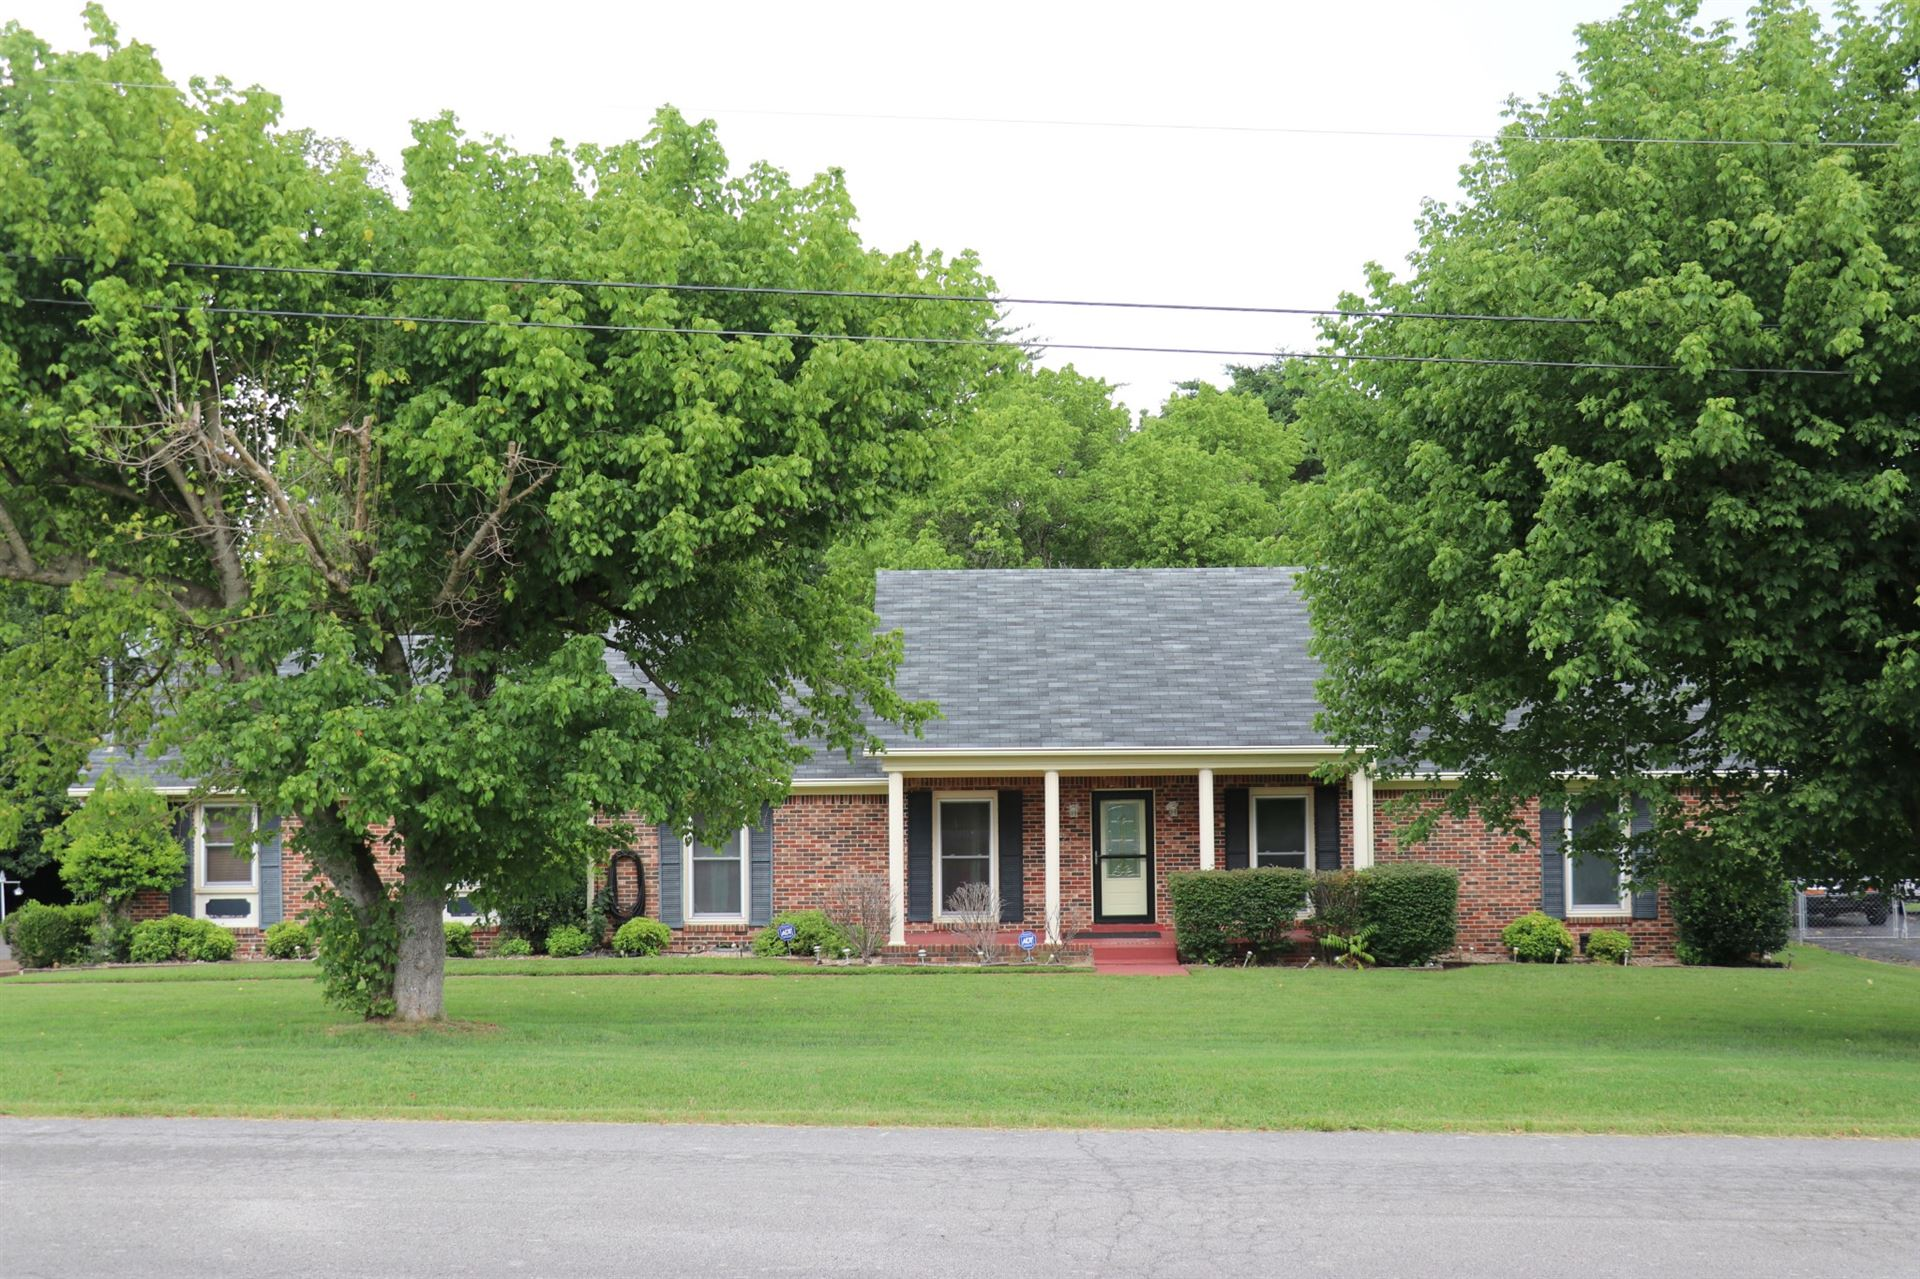 1506 Pine Dr, Columbia, TN 38401 - MLS#: 2171302